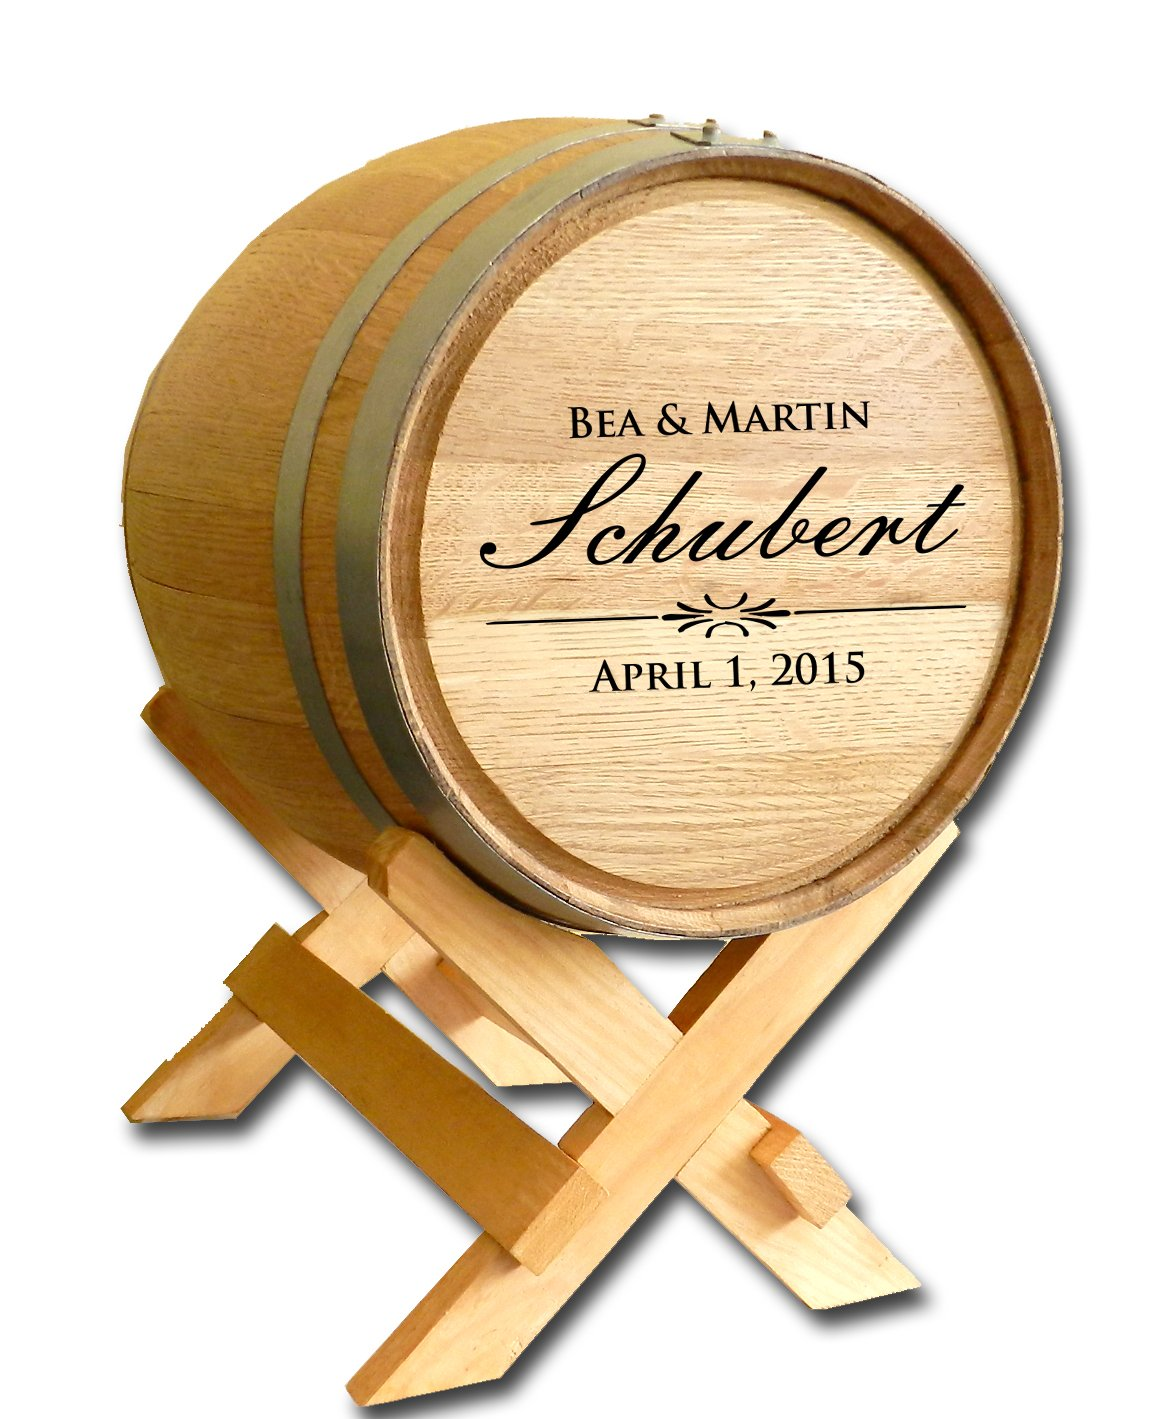 Personalized Wedding Card Barrel by Thousand Oaks Barrel Co.